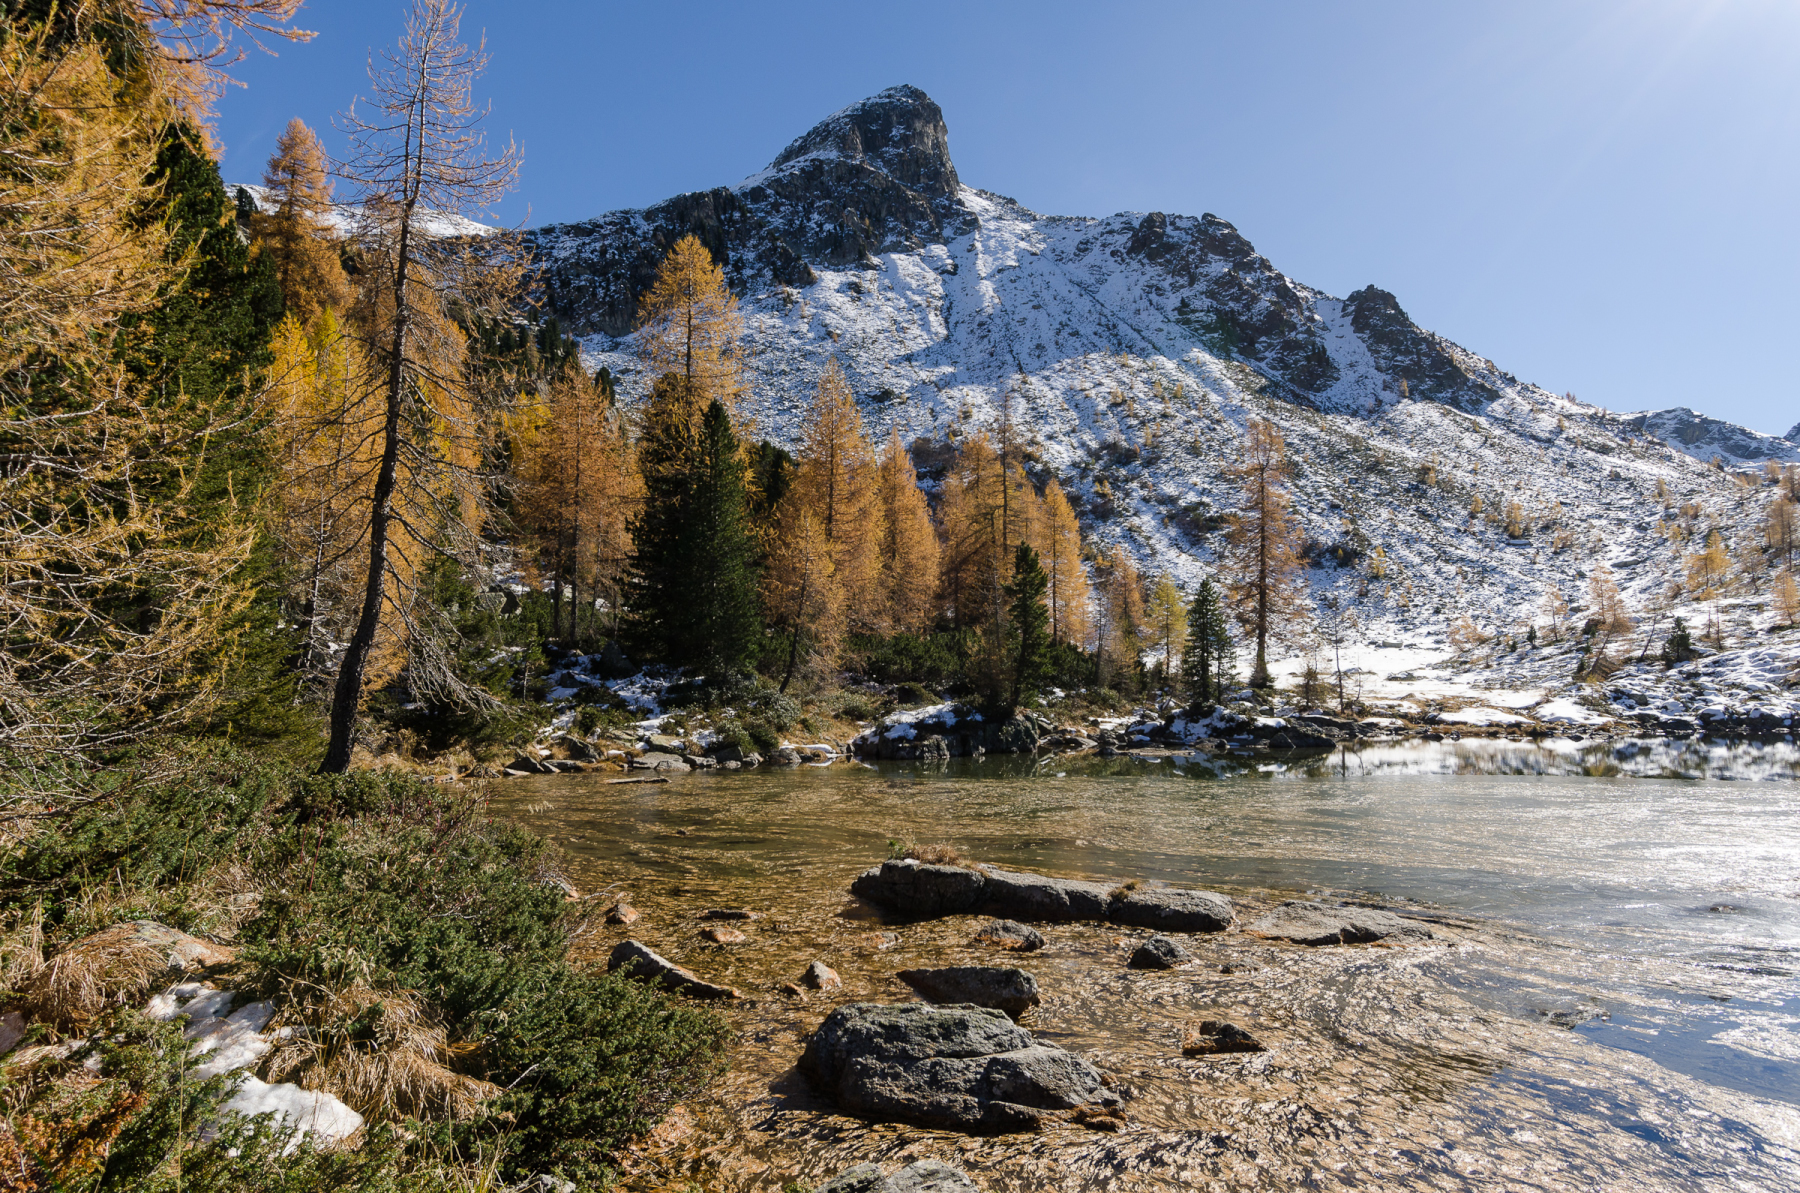 Cengello lake, between autumn and winter...